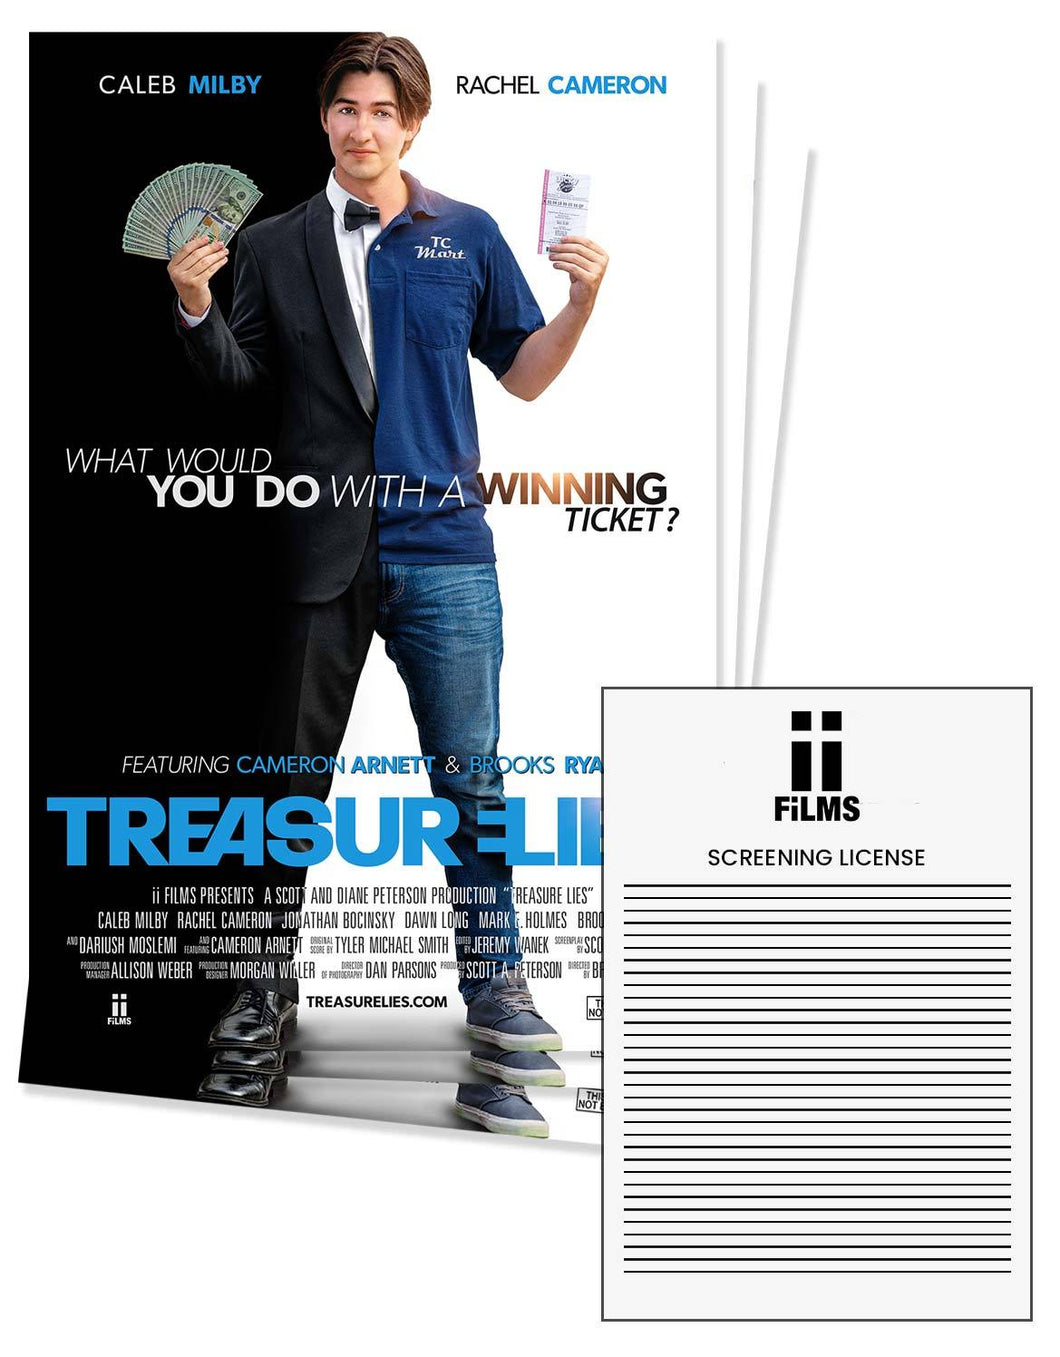 treasure lies movie license